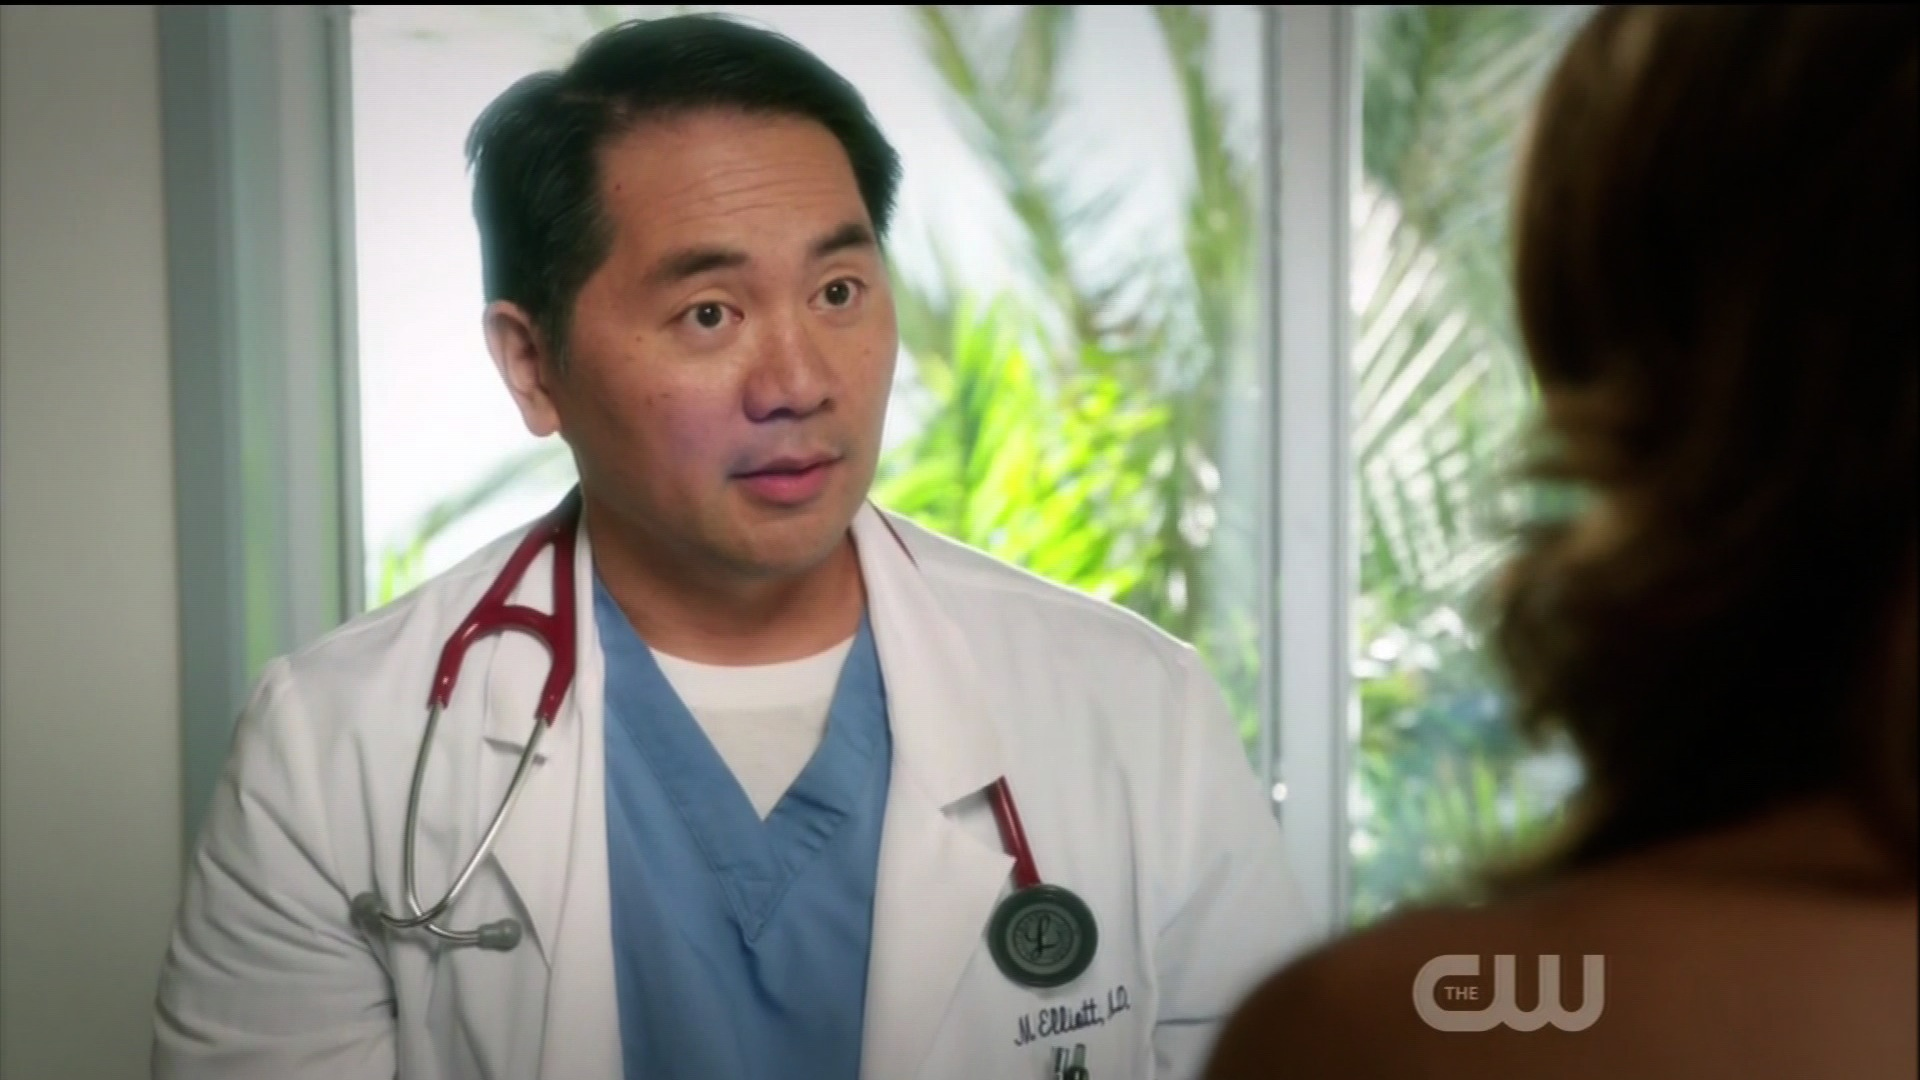 Jane the Virgin | Dr. Elliot, Miami ER